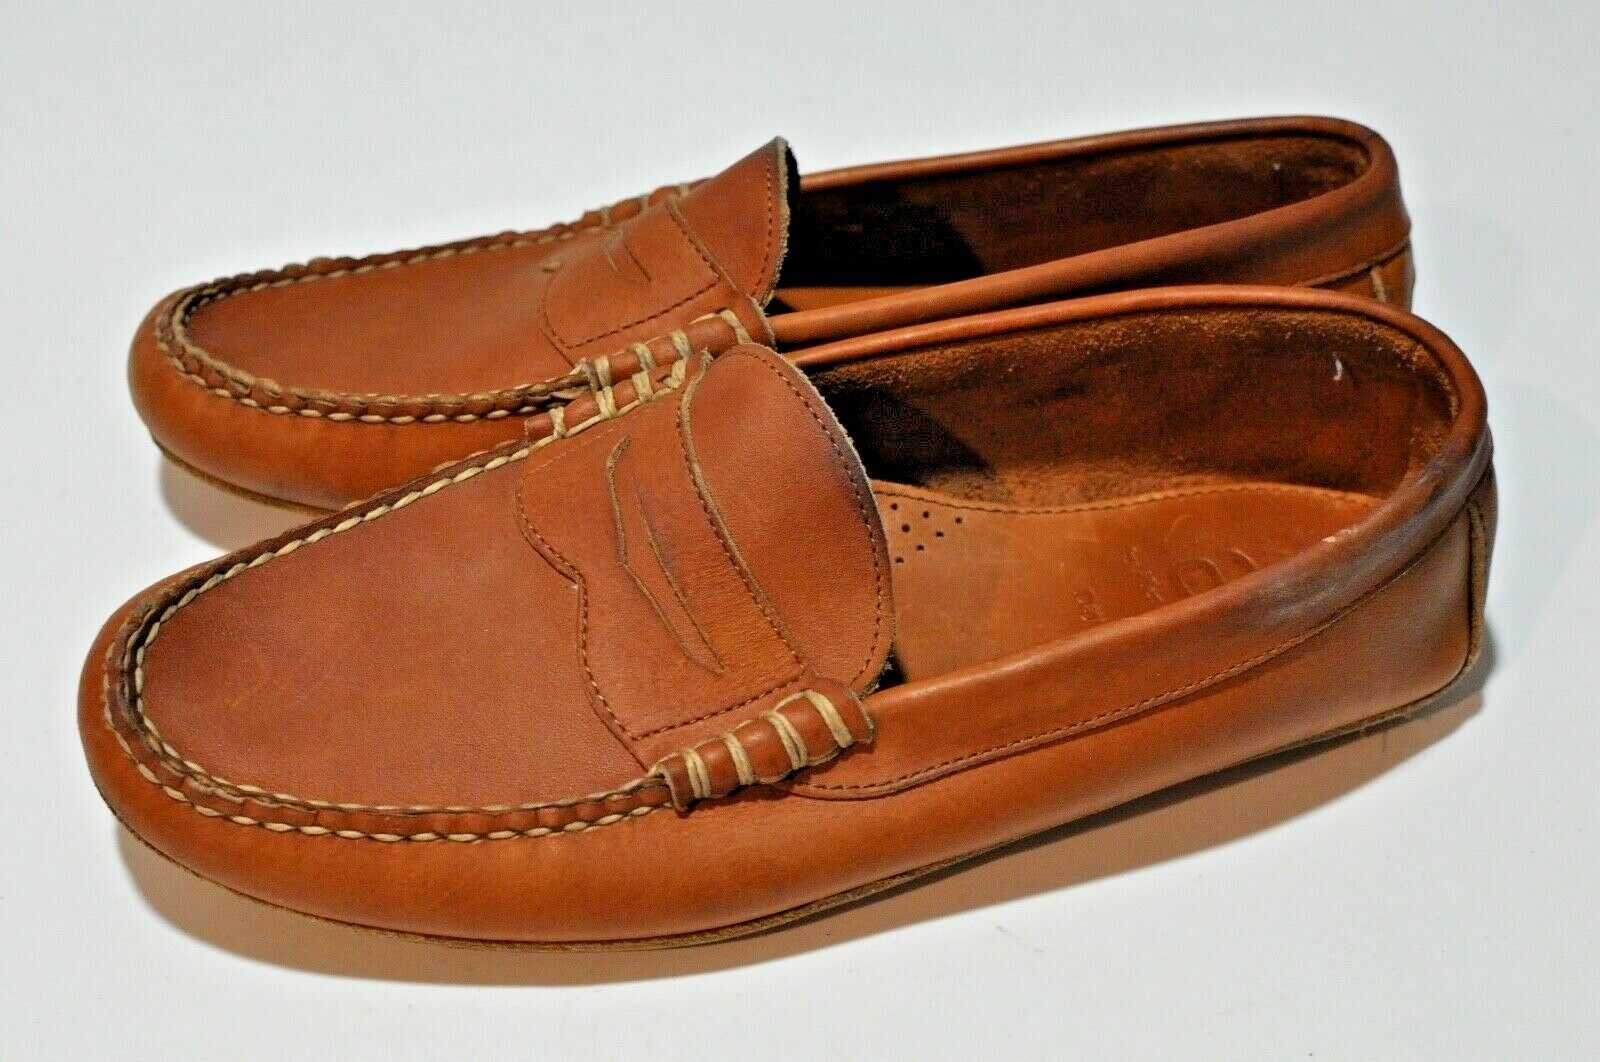 Allen Edmonds Daytona leather loafers Mens 11.5